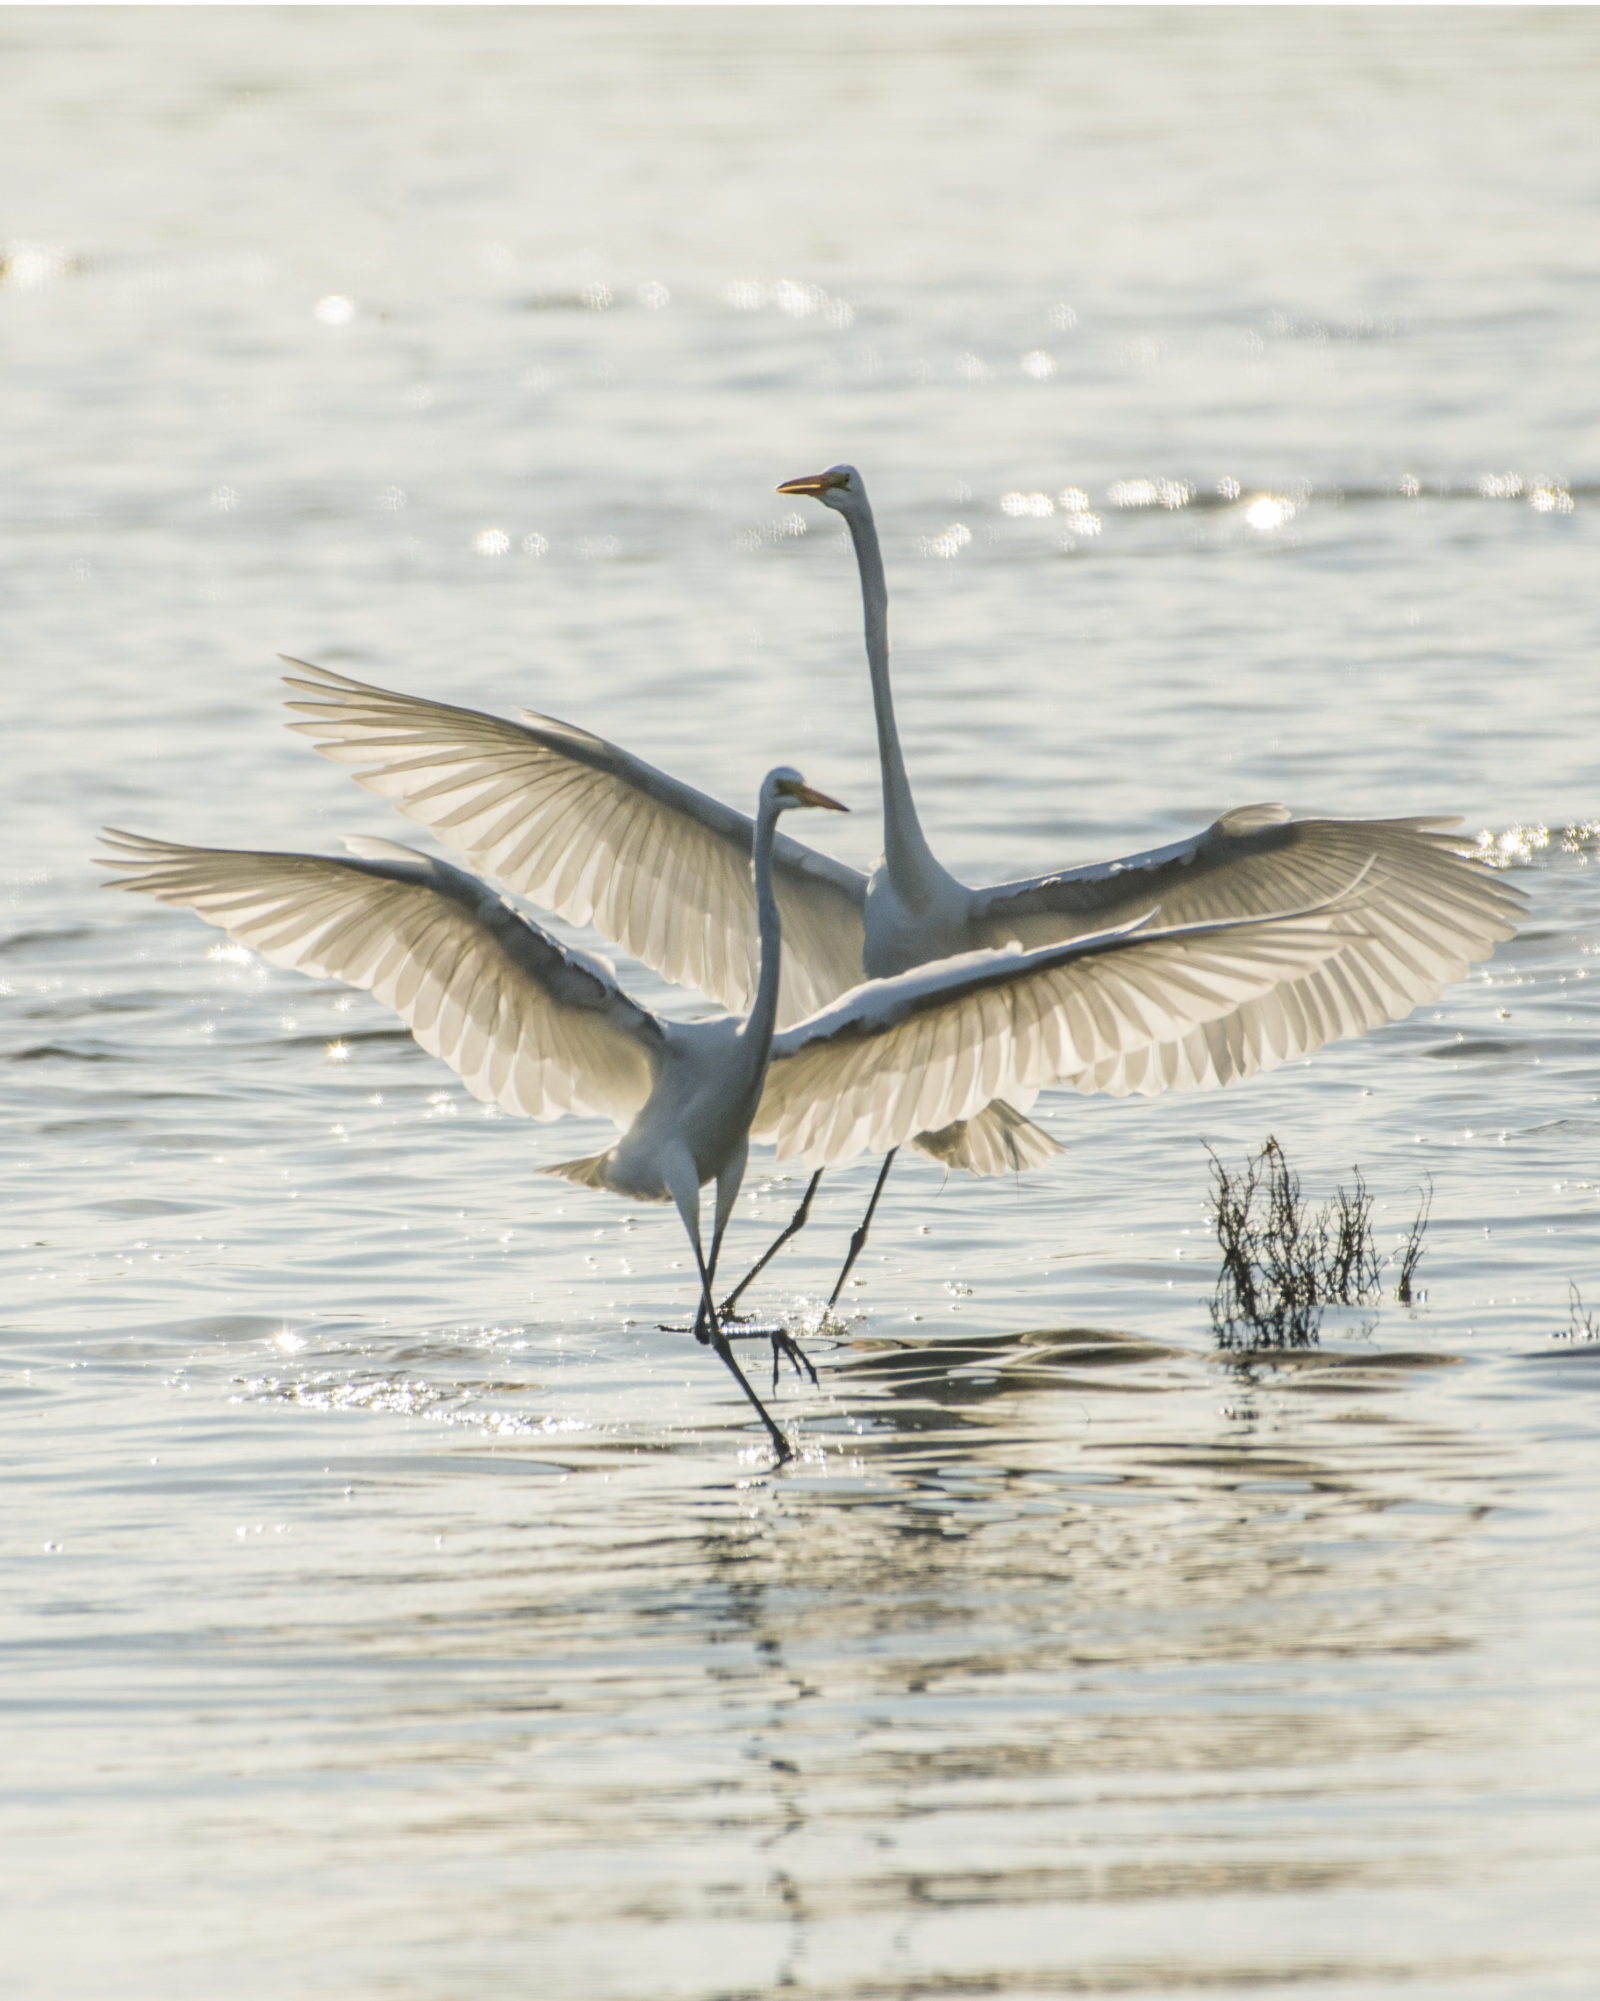 The Dance of the Great Egrets